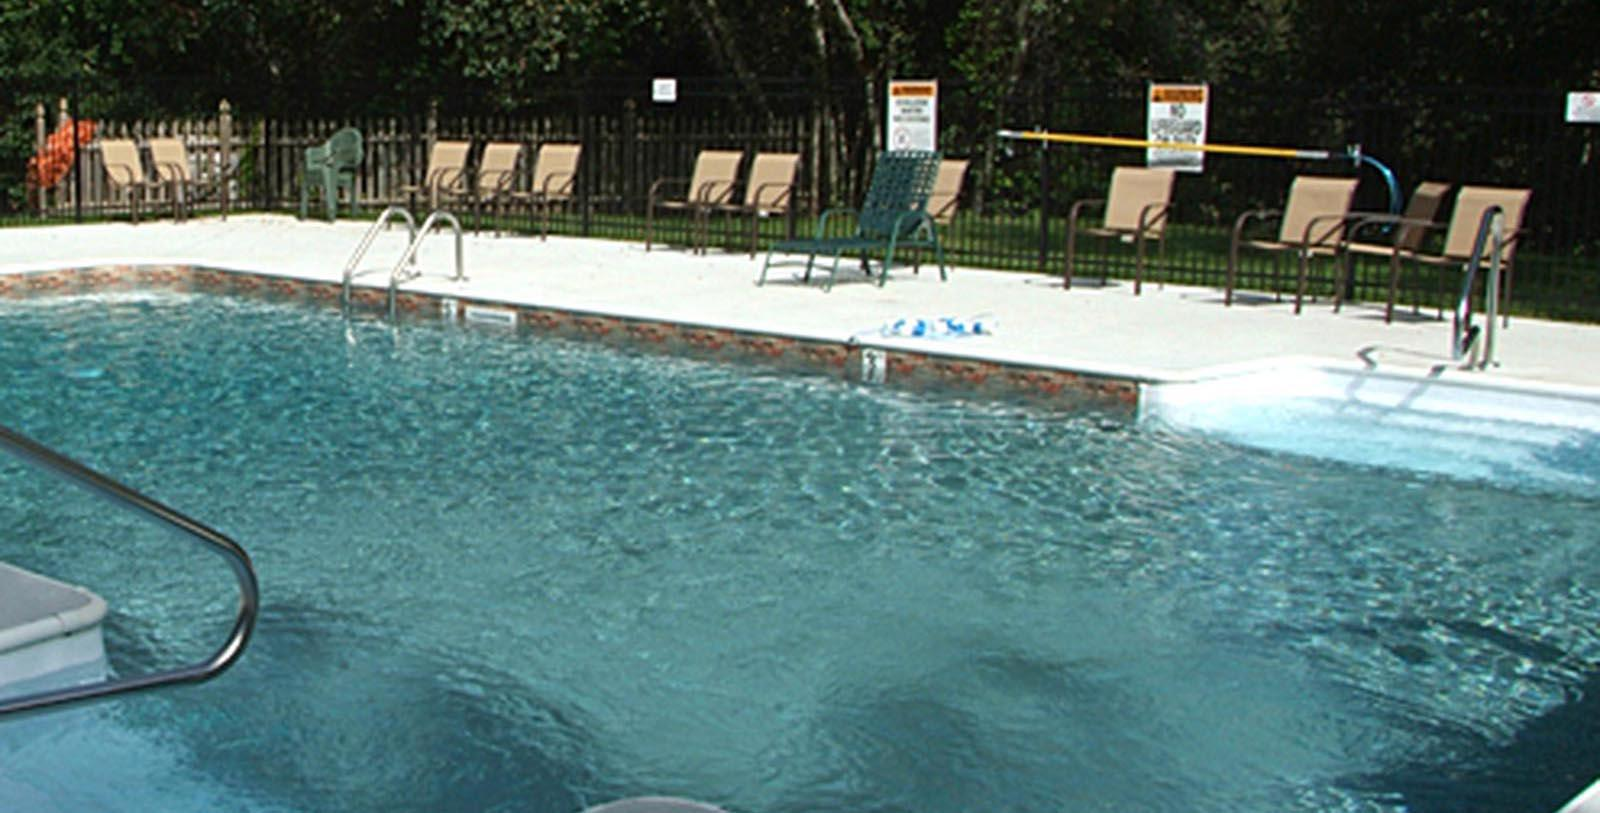 Image of Pool Publick House Historic Inn, 1771, Member of Historic Hotels of America, in Sturbridge, Massachusetts, Explore